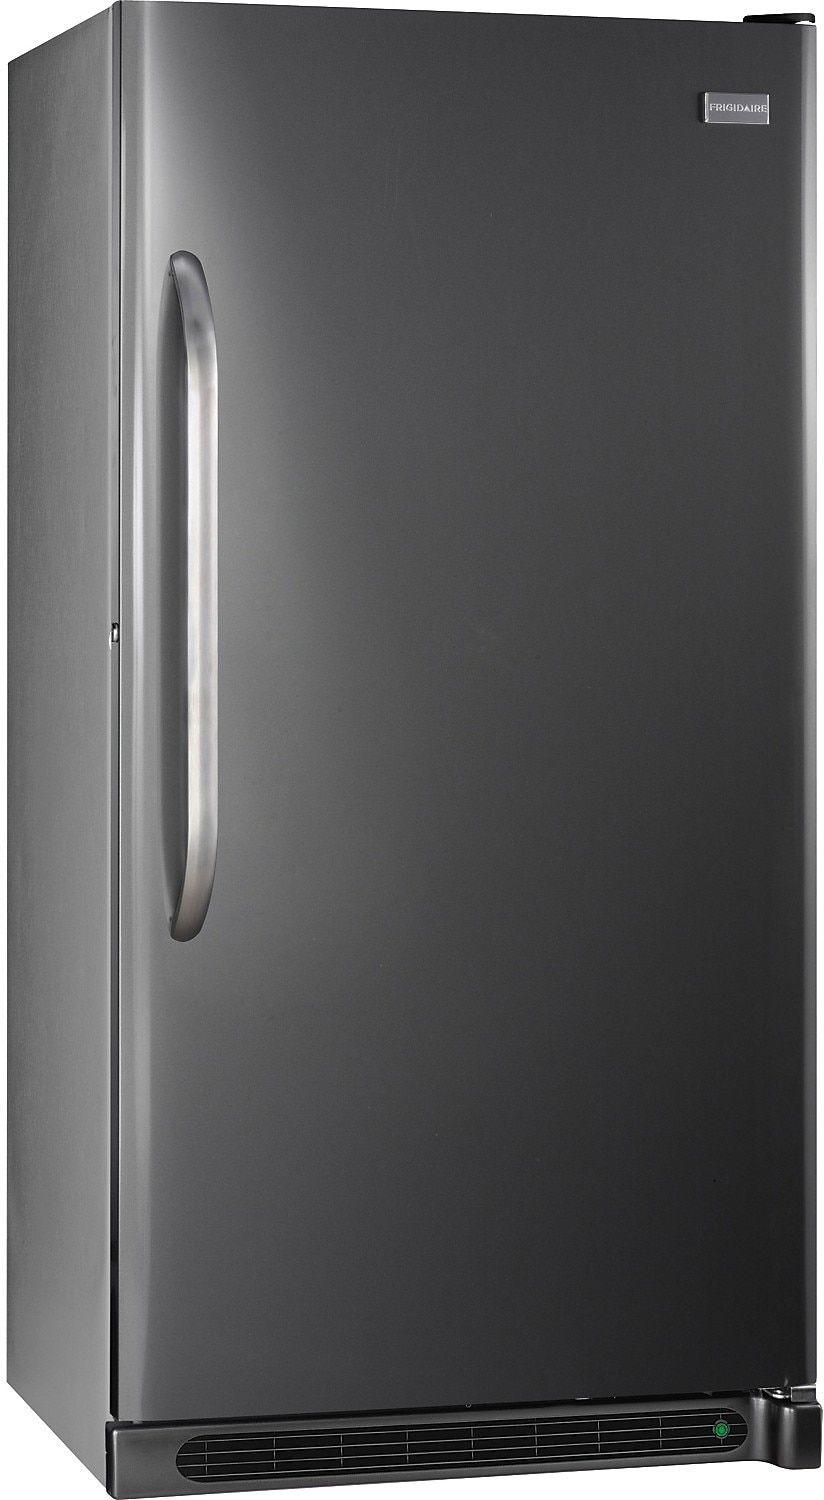 Refrigerators and Freezers - Frigidaire 20.5 Cu. Ft. Frost-Free Upright Freezer - Slate